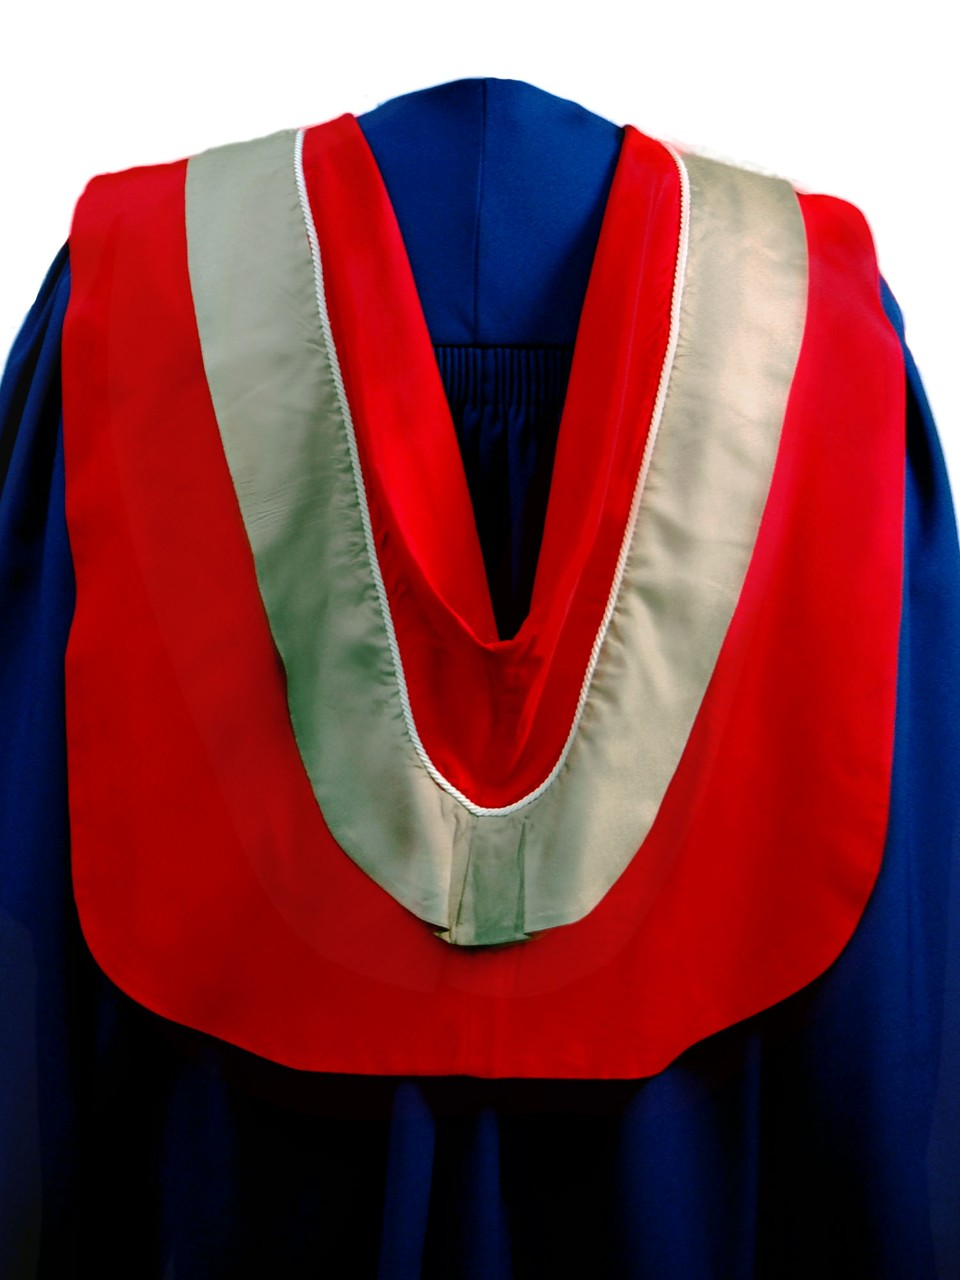 The Master of Science in the Faculty of Applied Science hood is red with wide fawn border and white cording